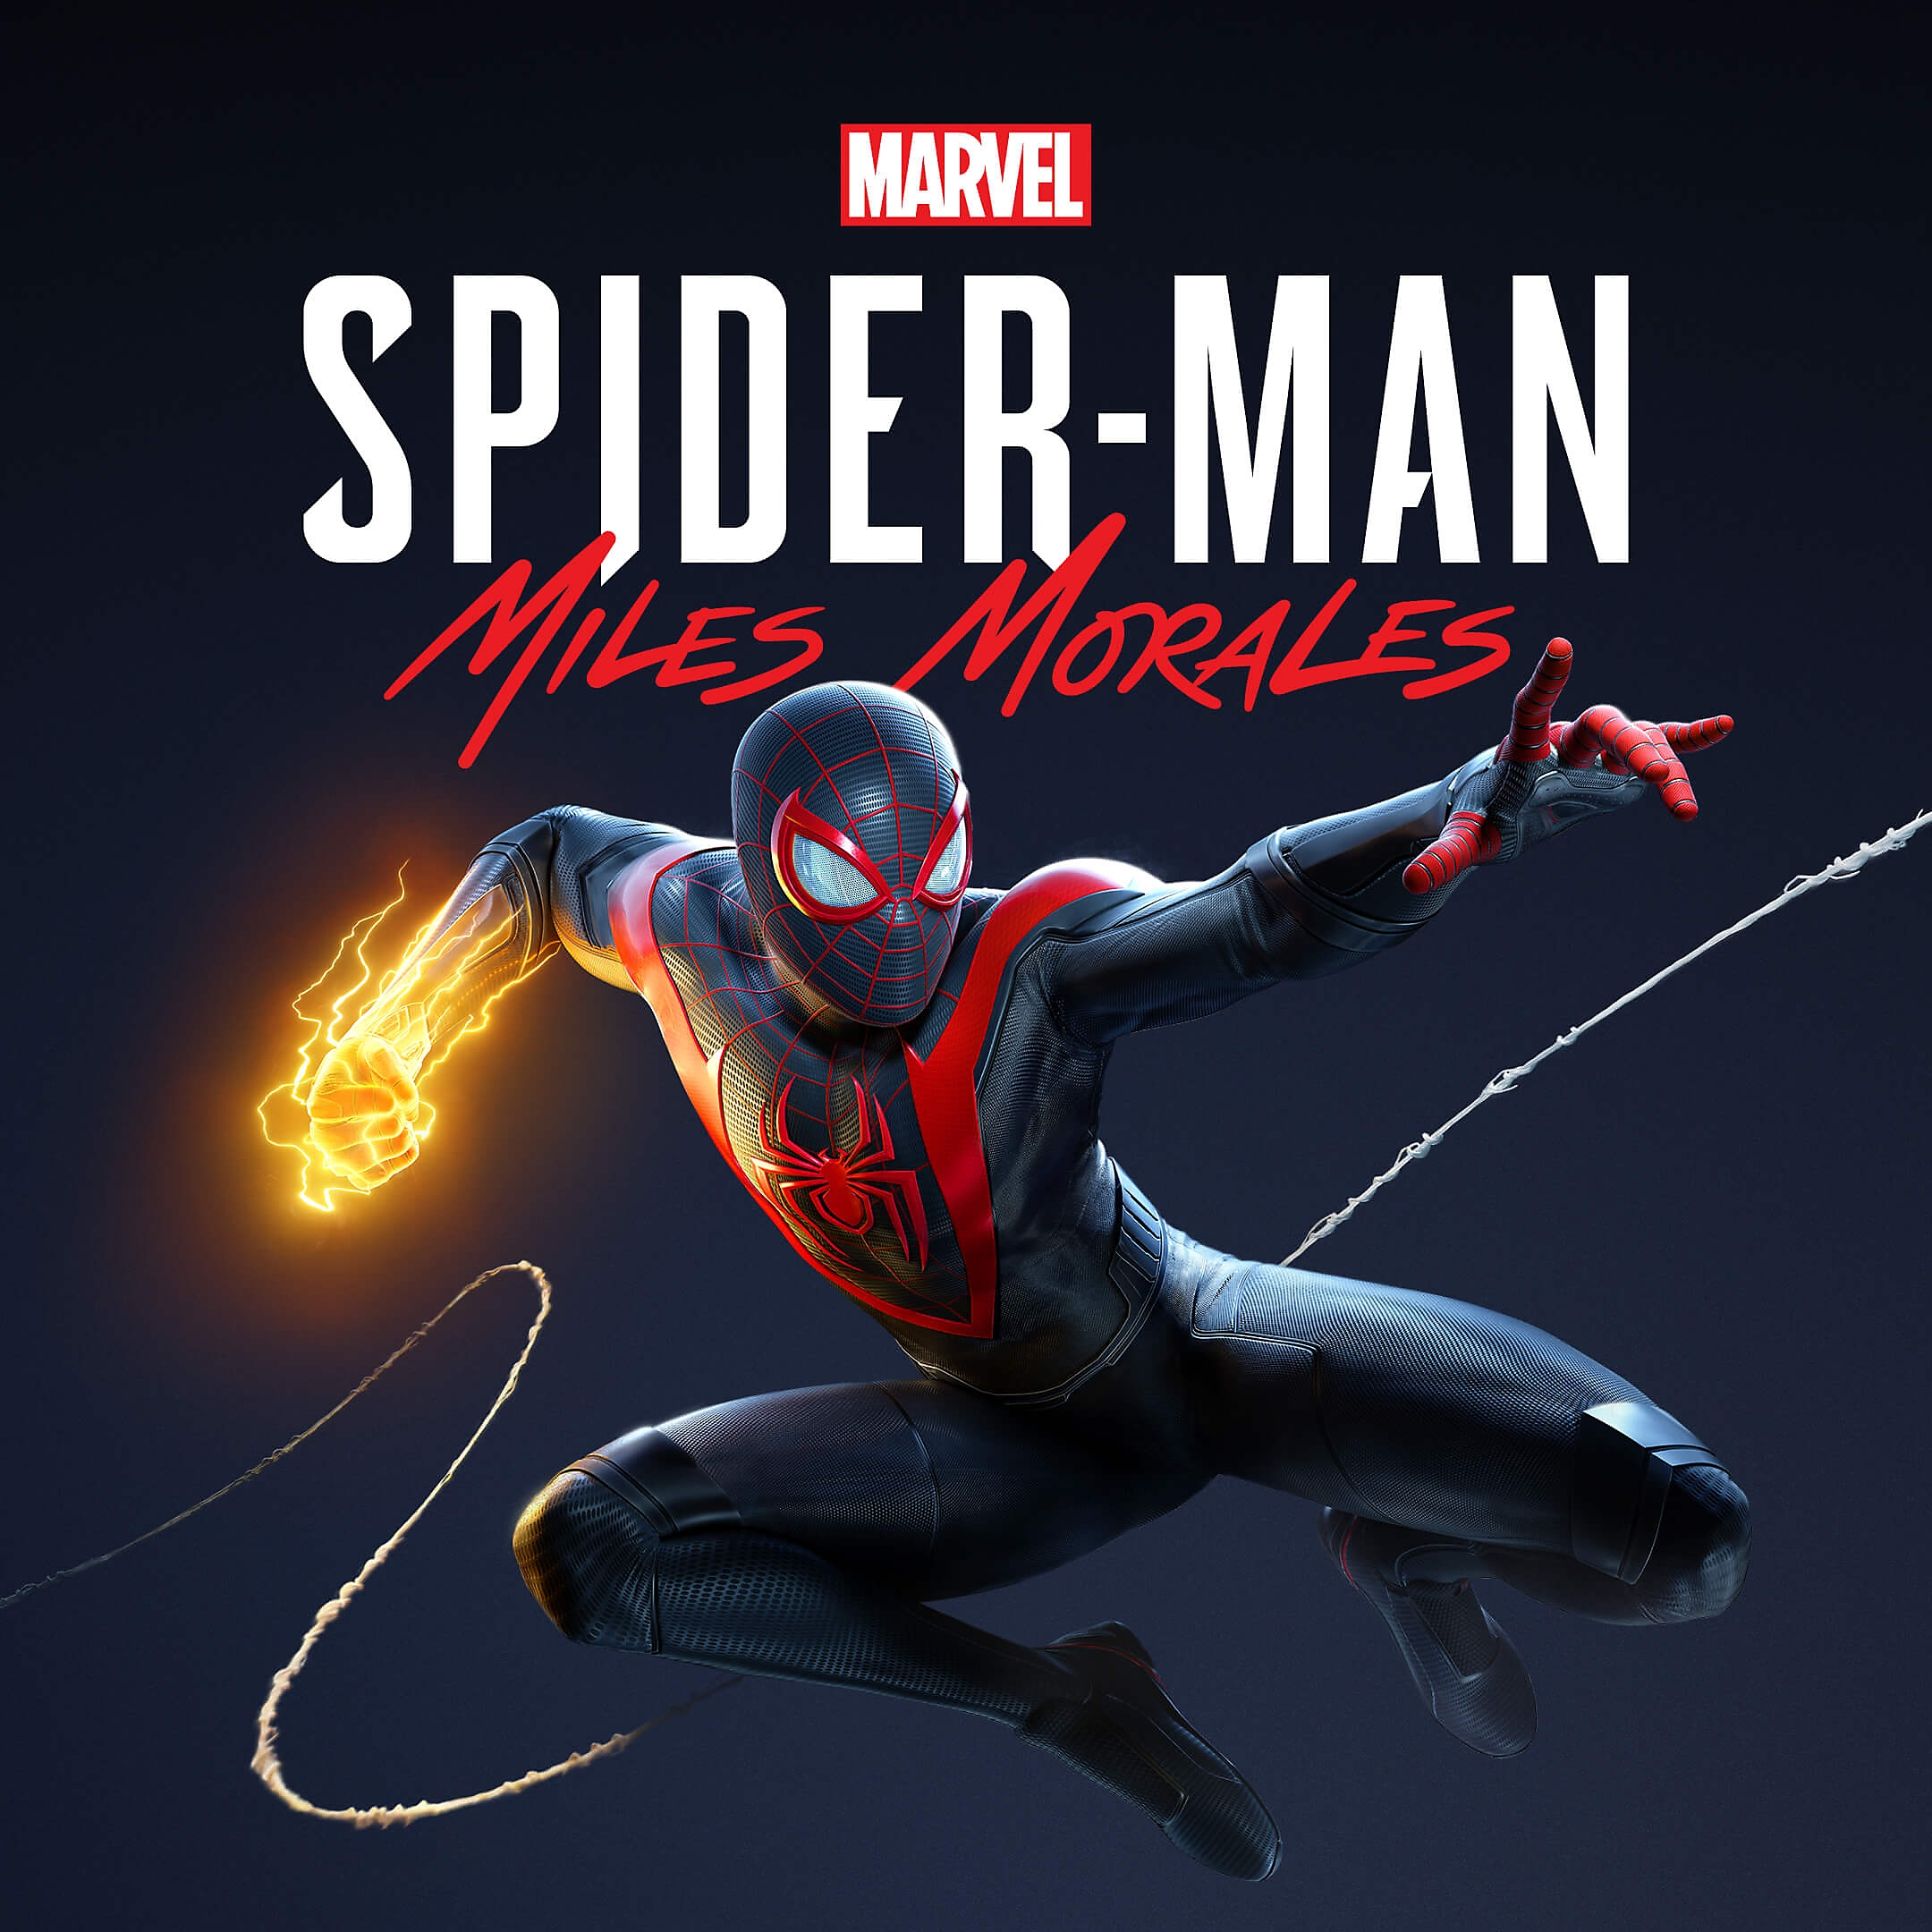 Spiderman Miles Morales - Store Art